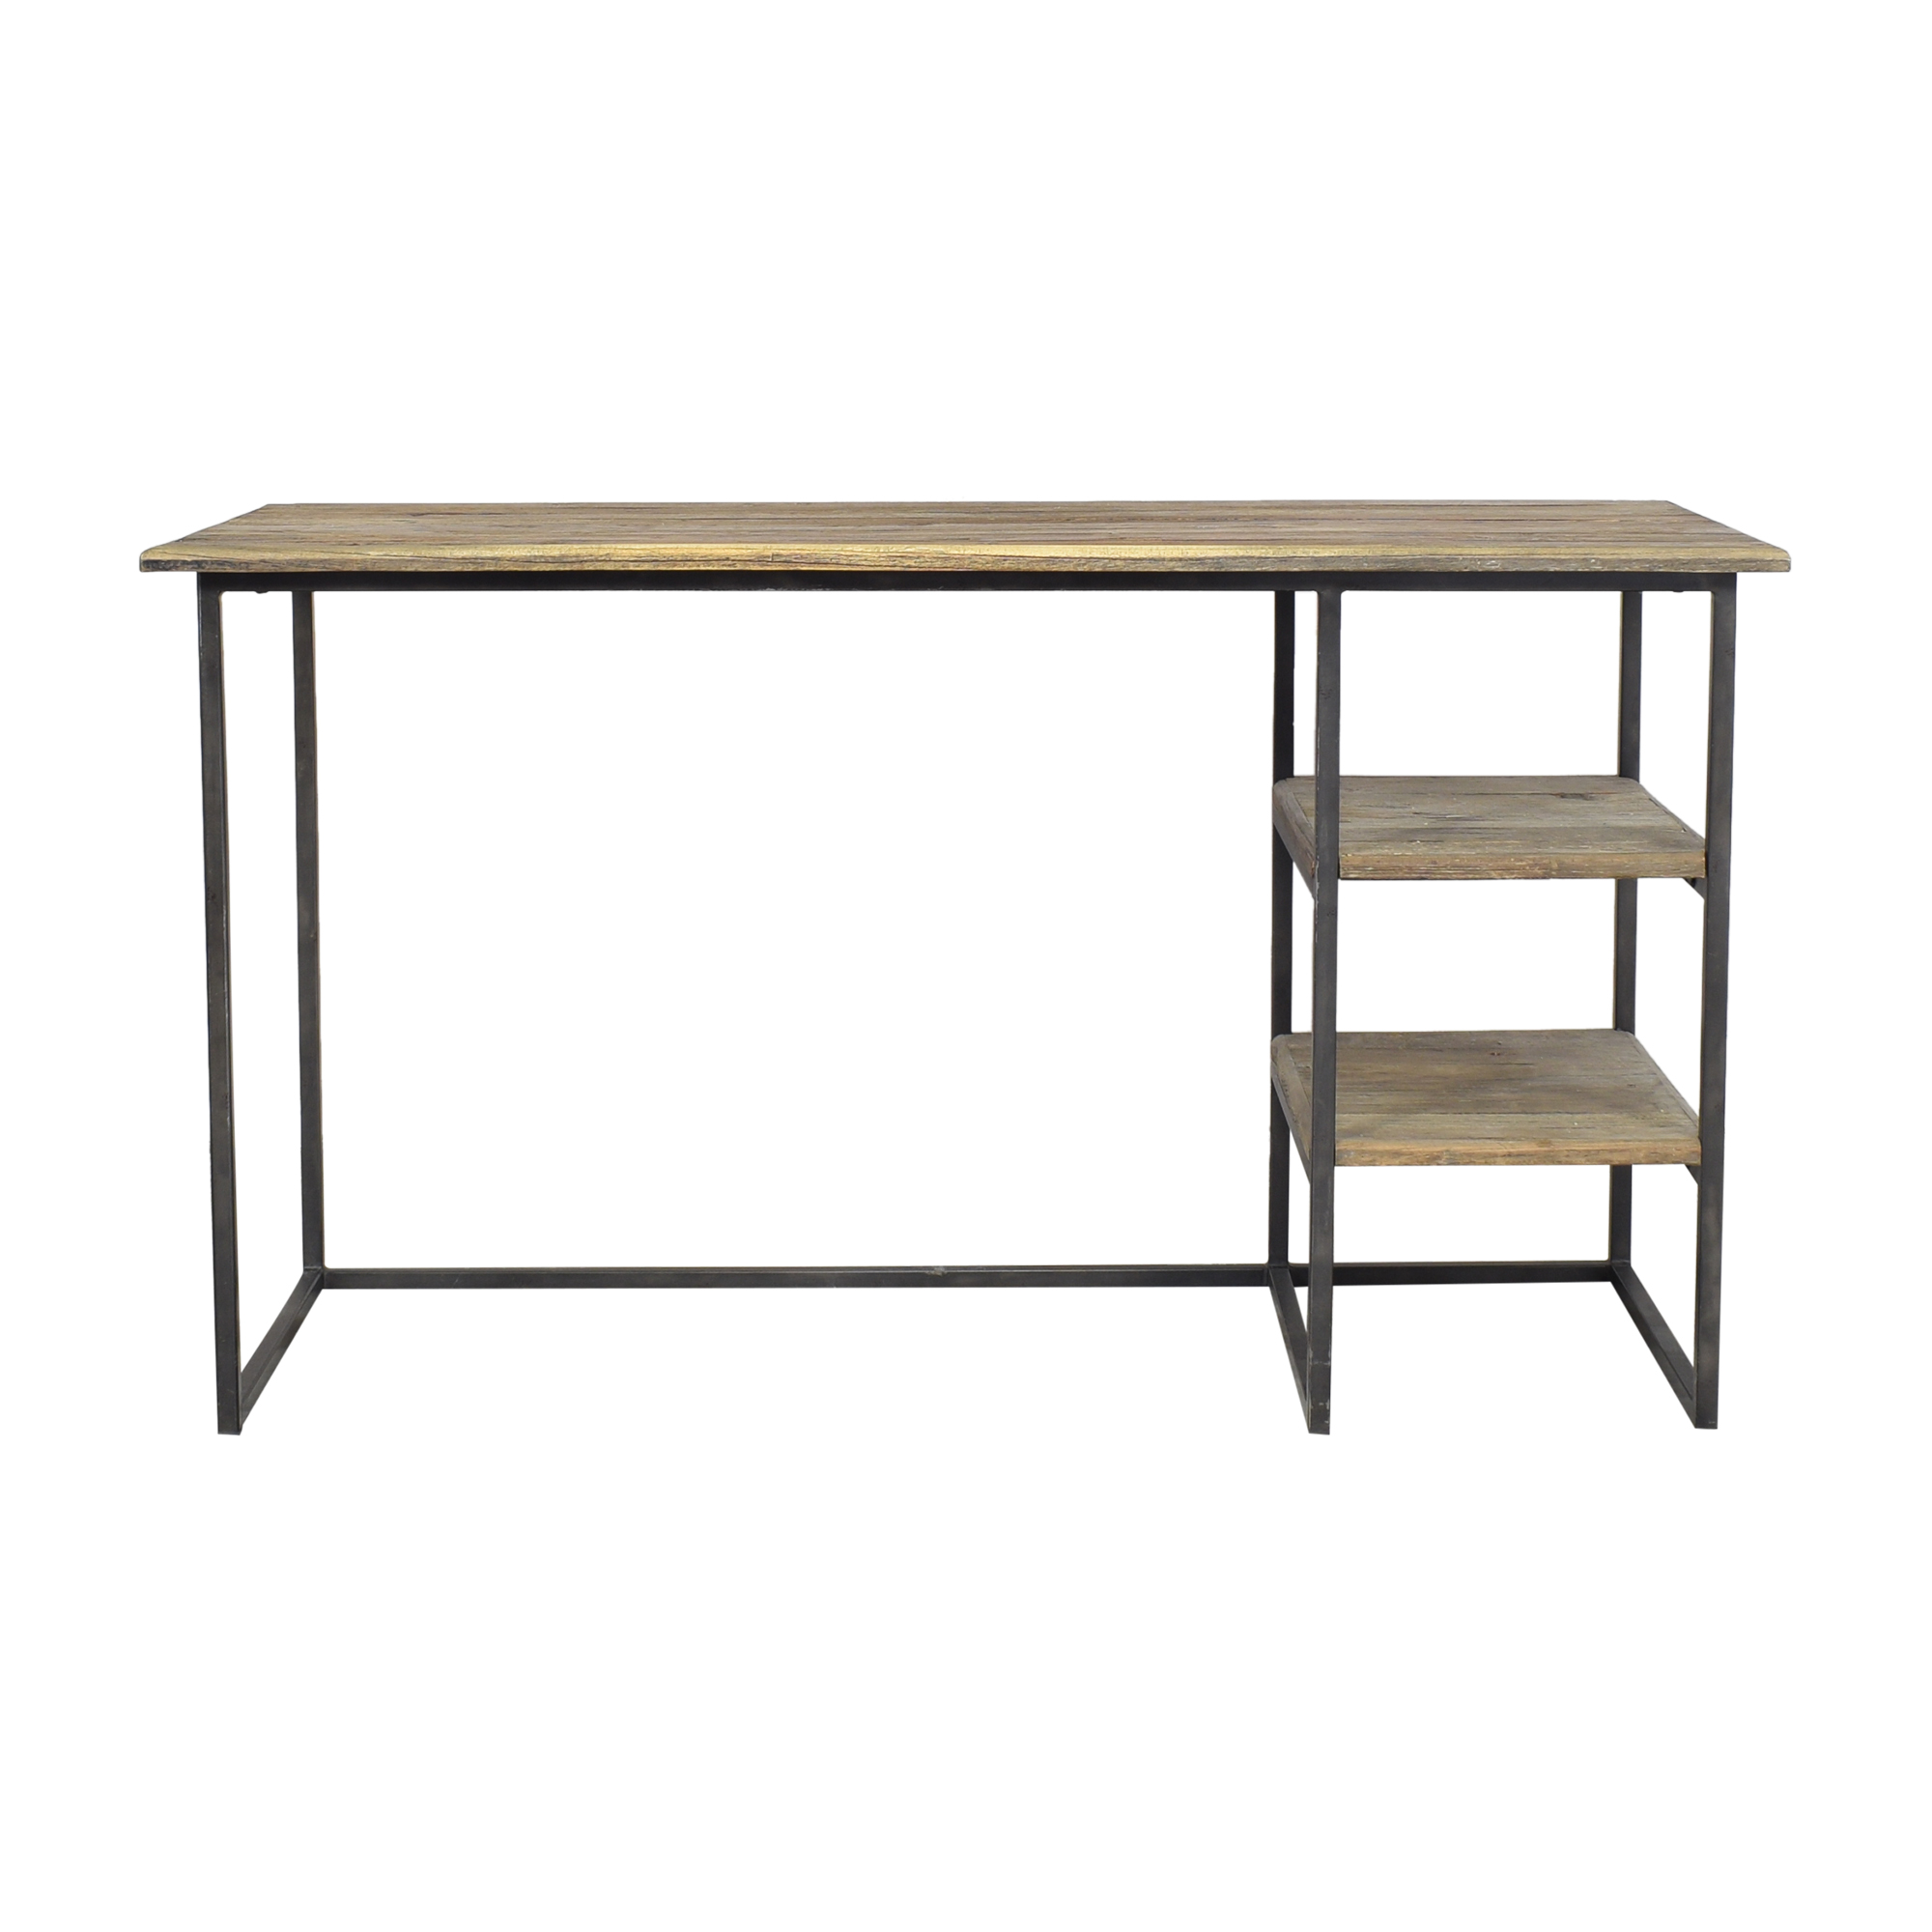 Restoration Hardware Restoration Hardware Fulton Desk for sale